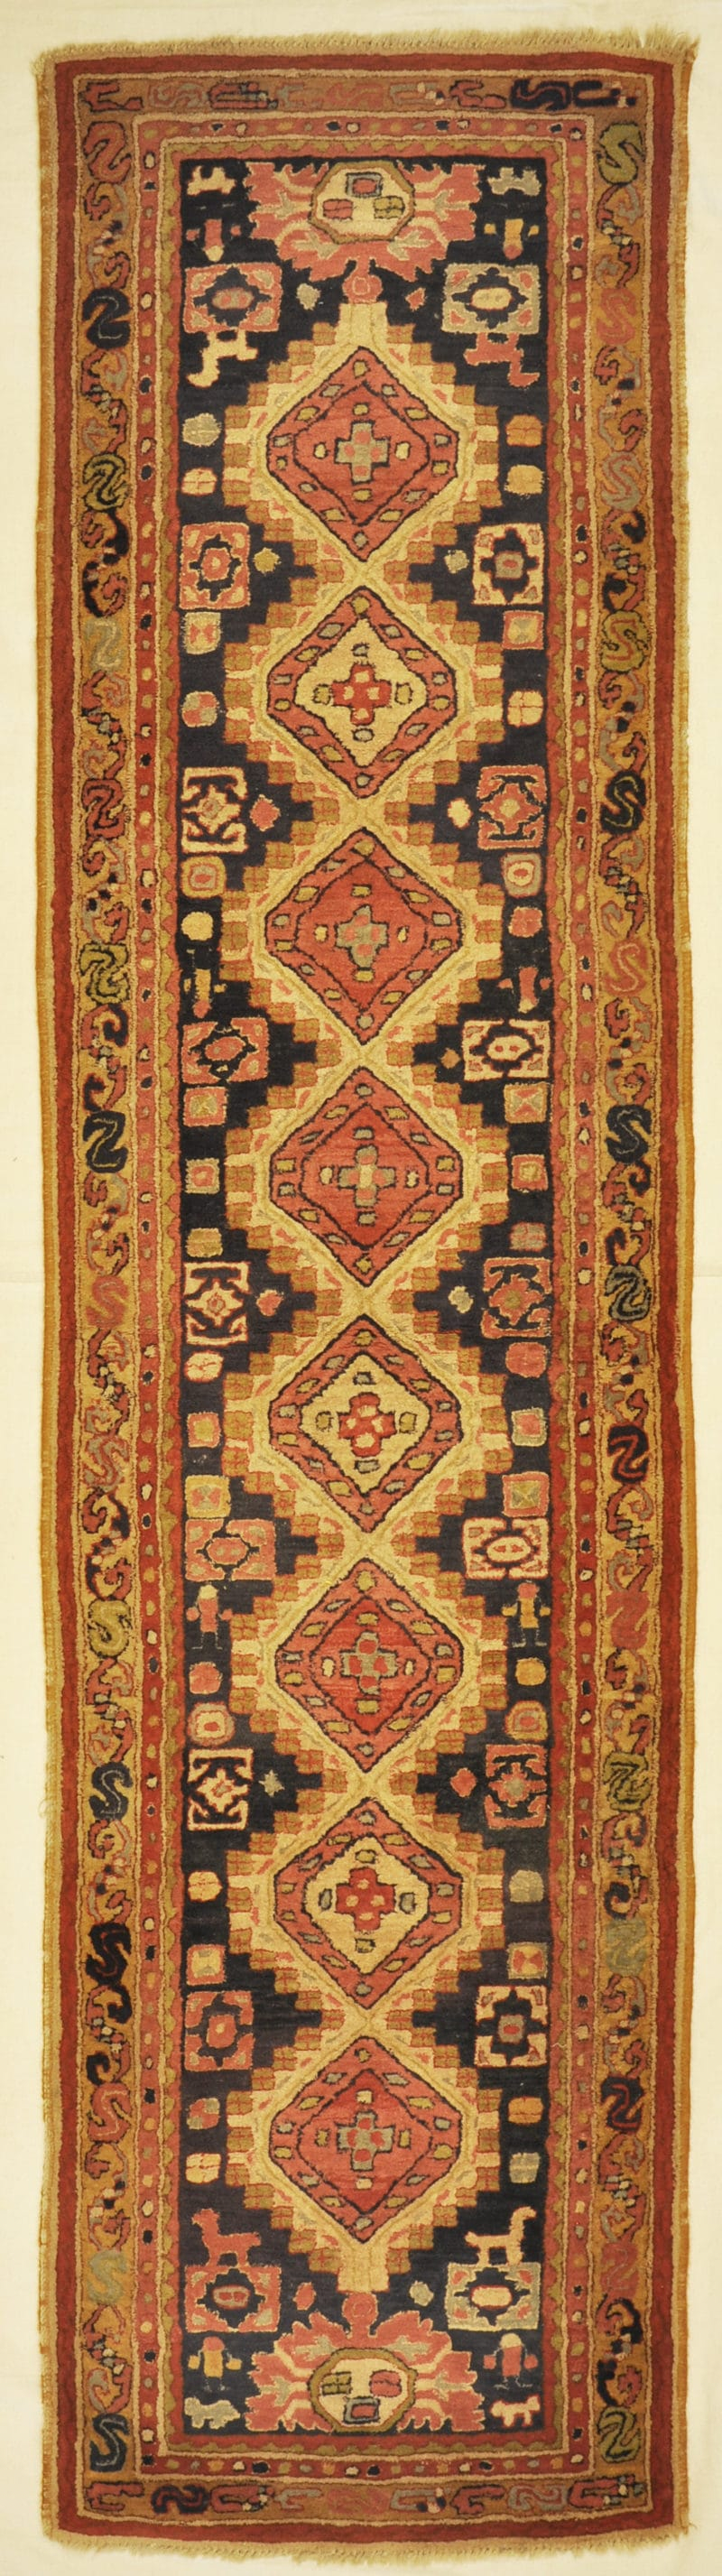 Antique Tetex rugs and more oriental carpet 33839-